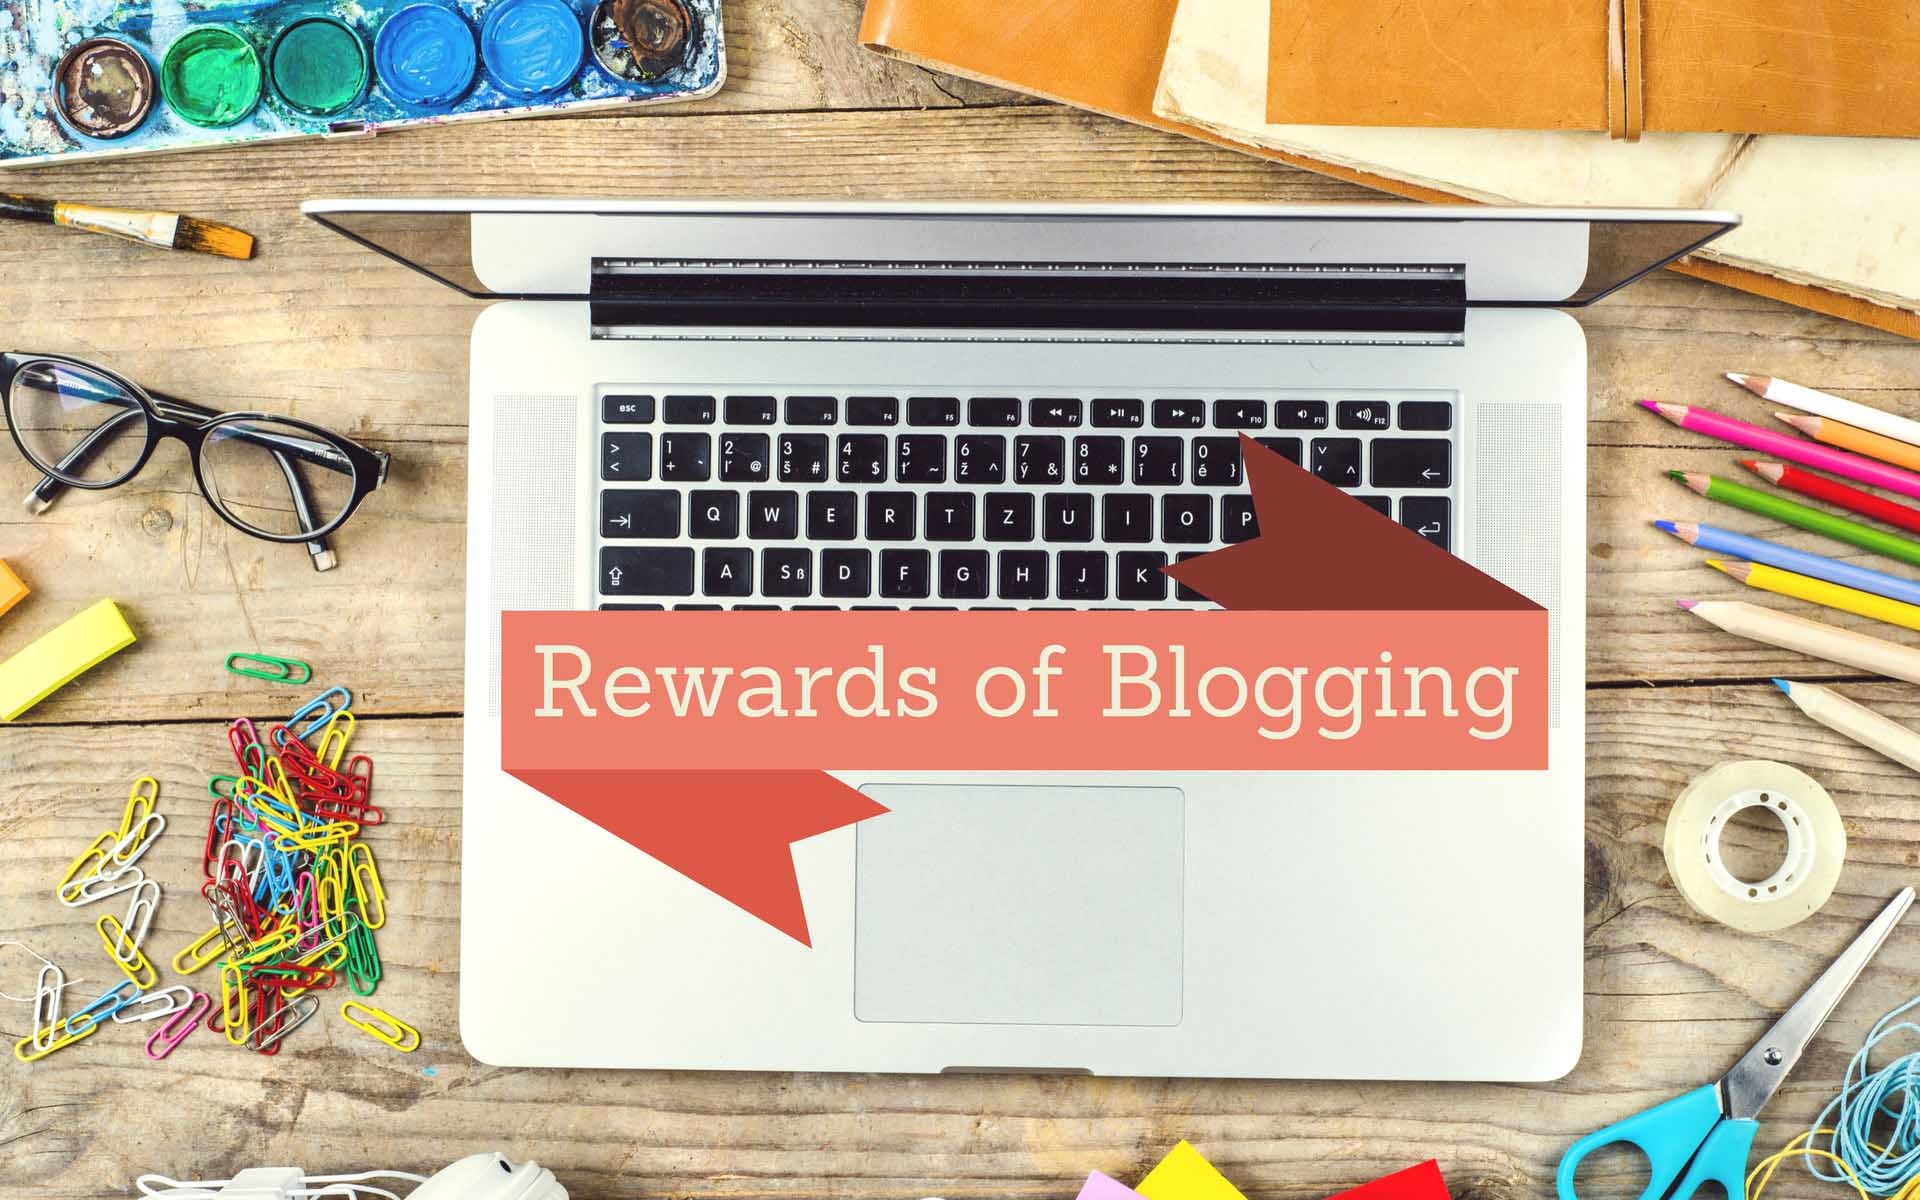 5 Reasons Why Blogging Is a Rewarding Experience